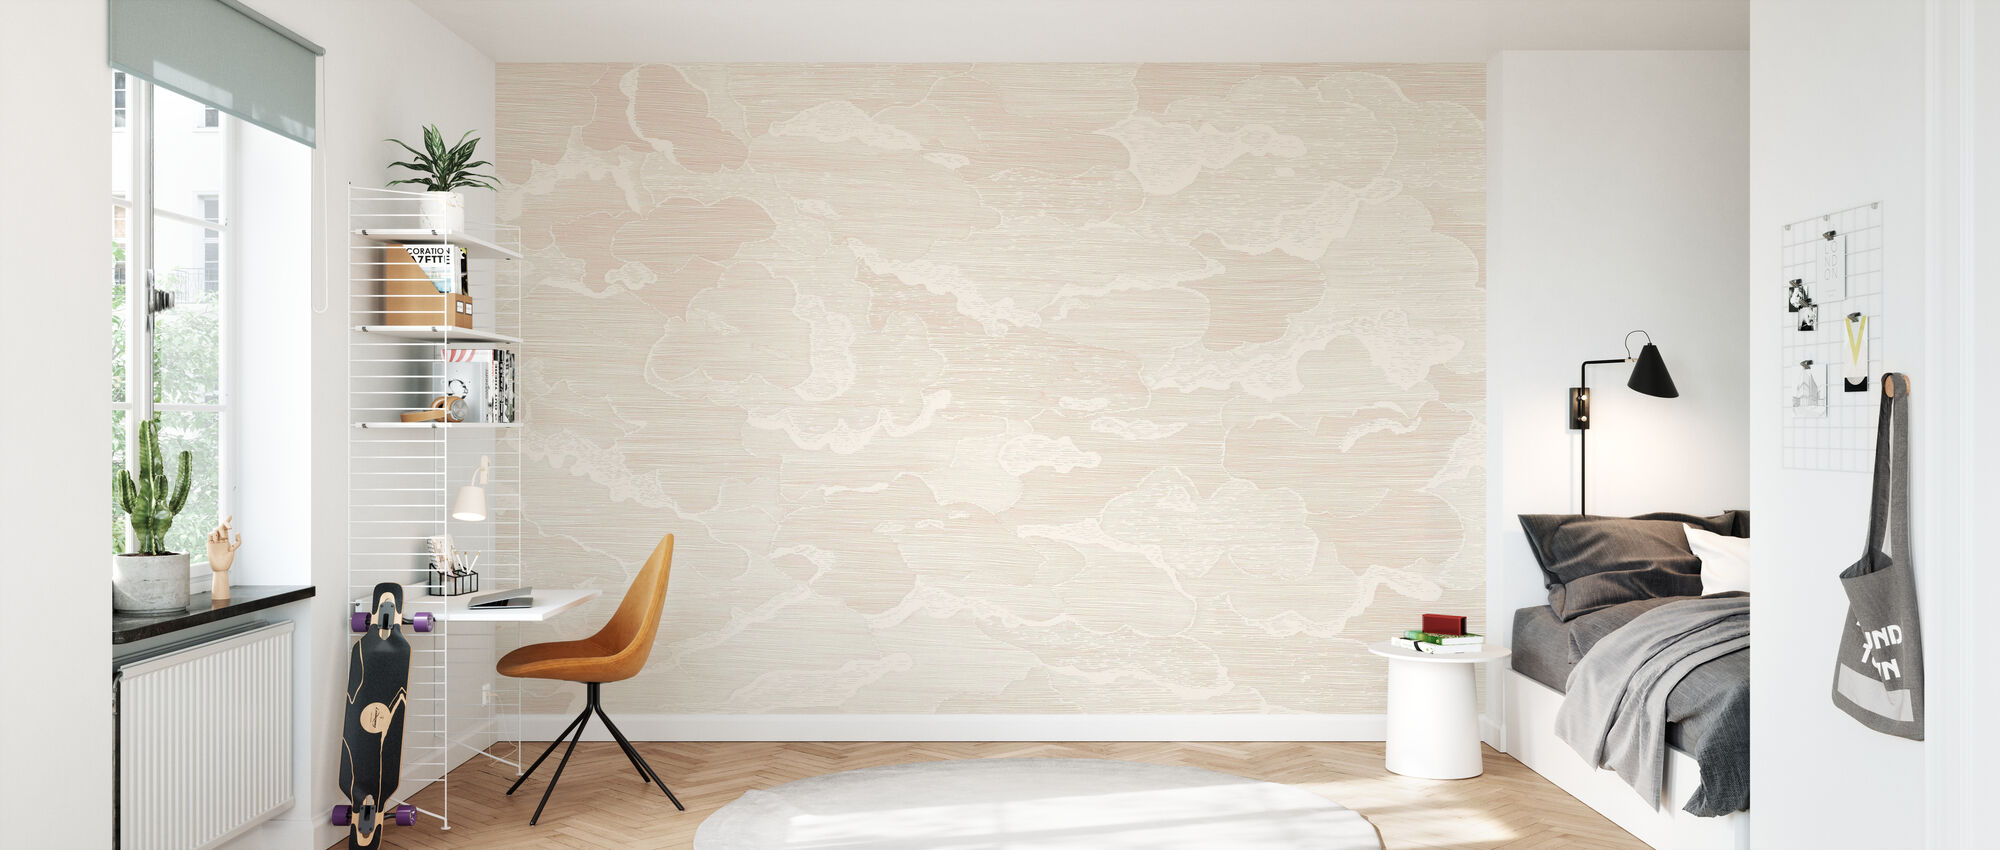 Up and Away - Blush - Wallpaper - Kids Room